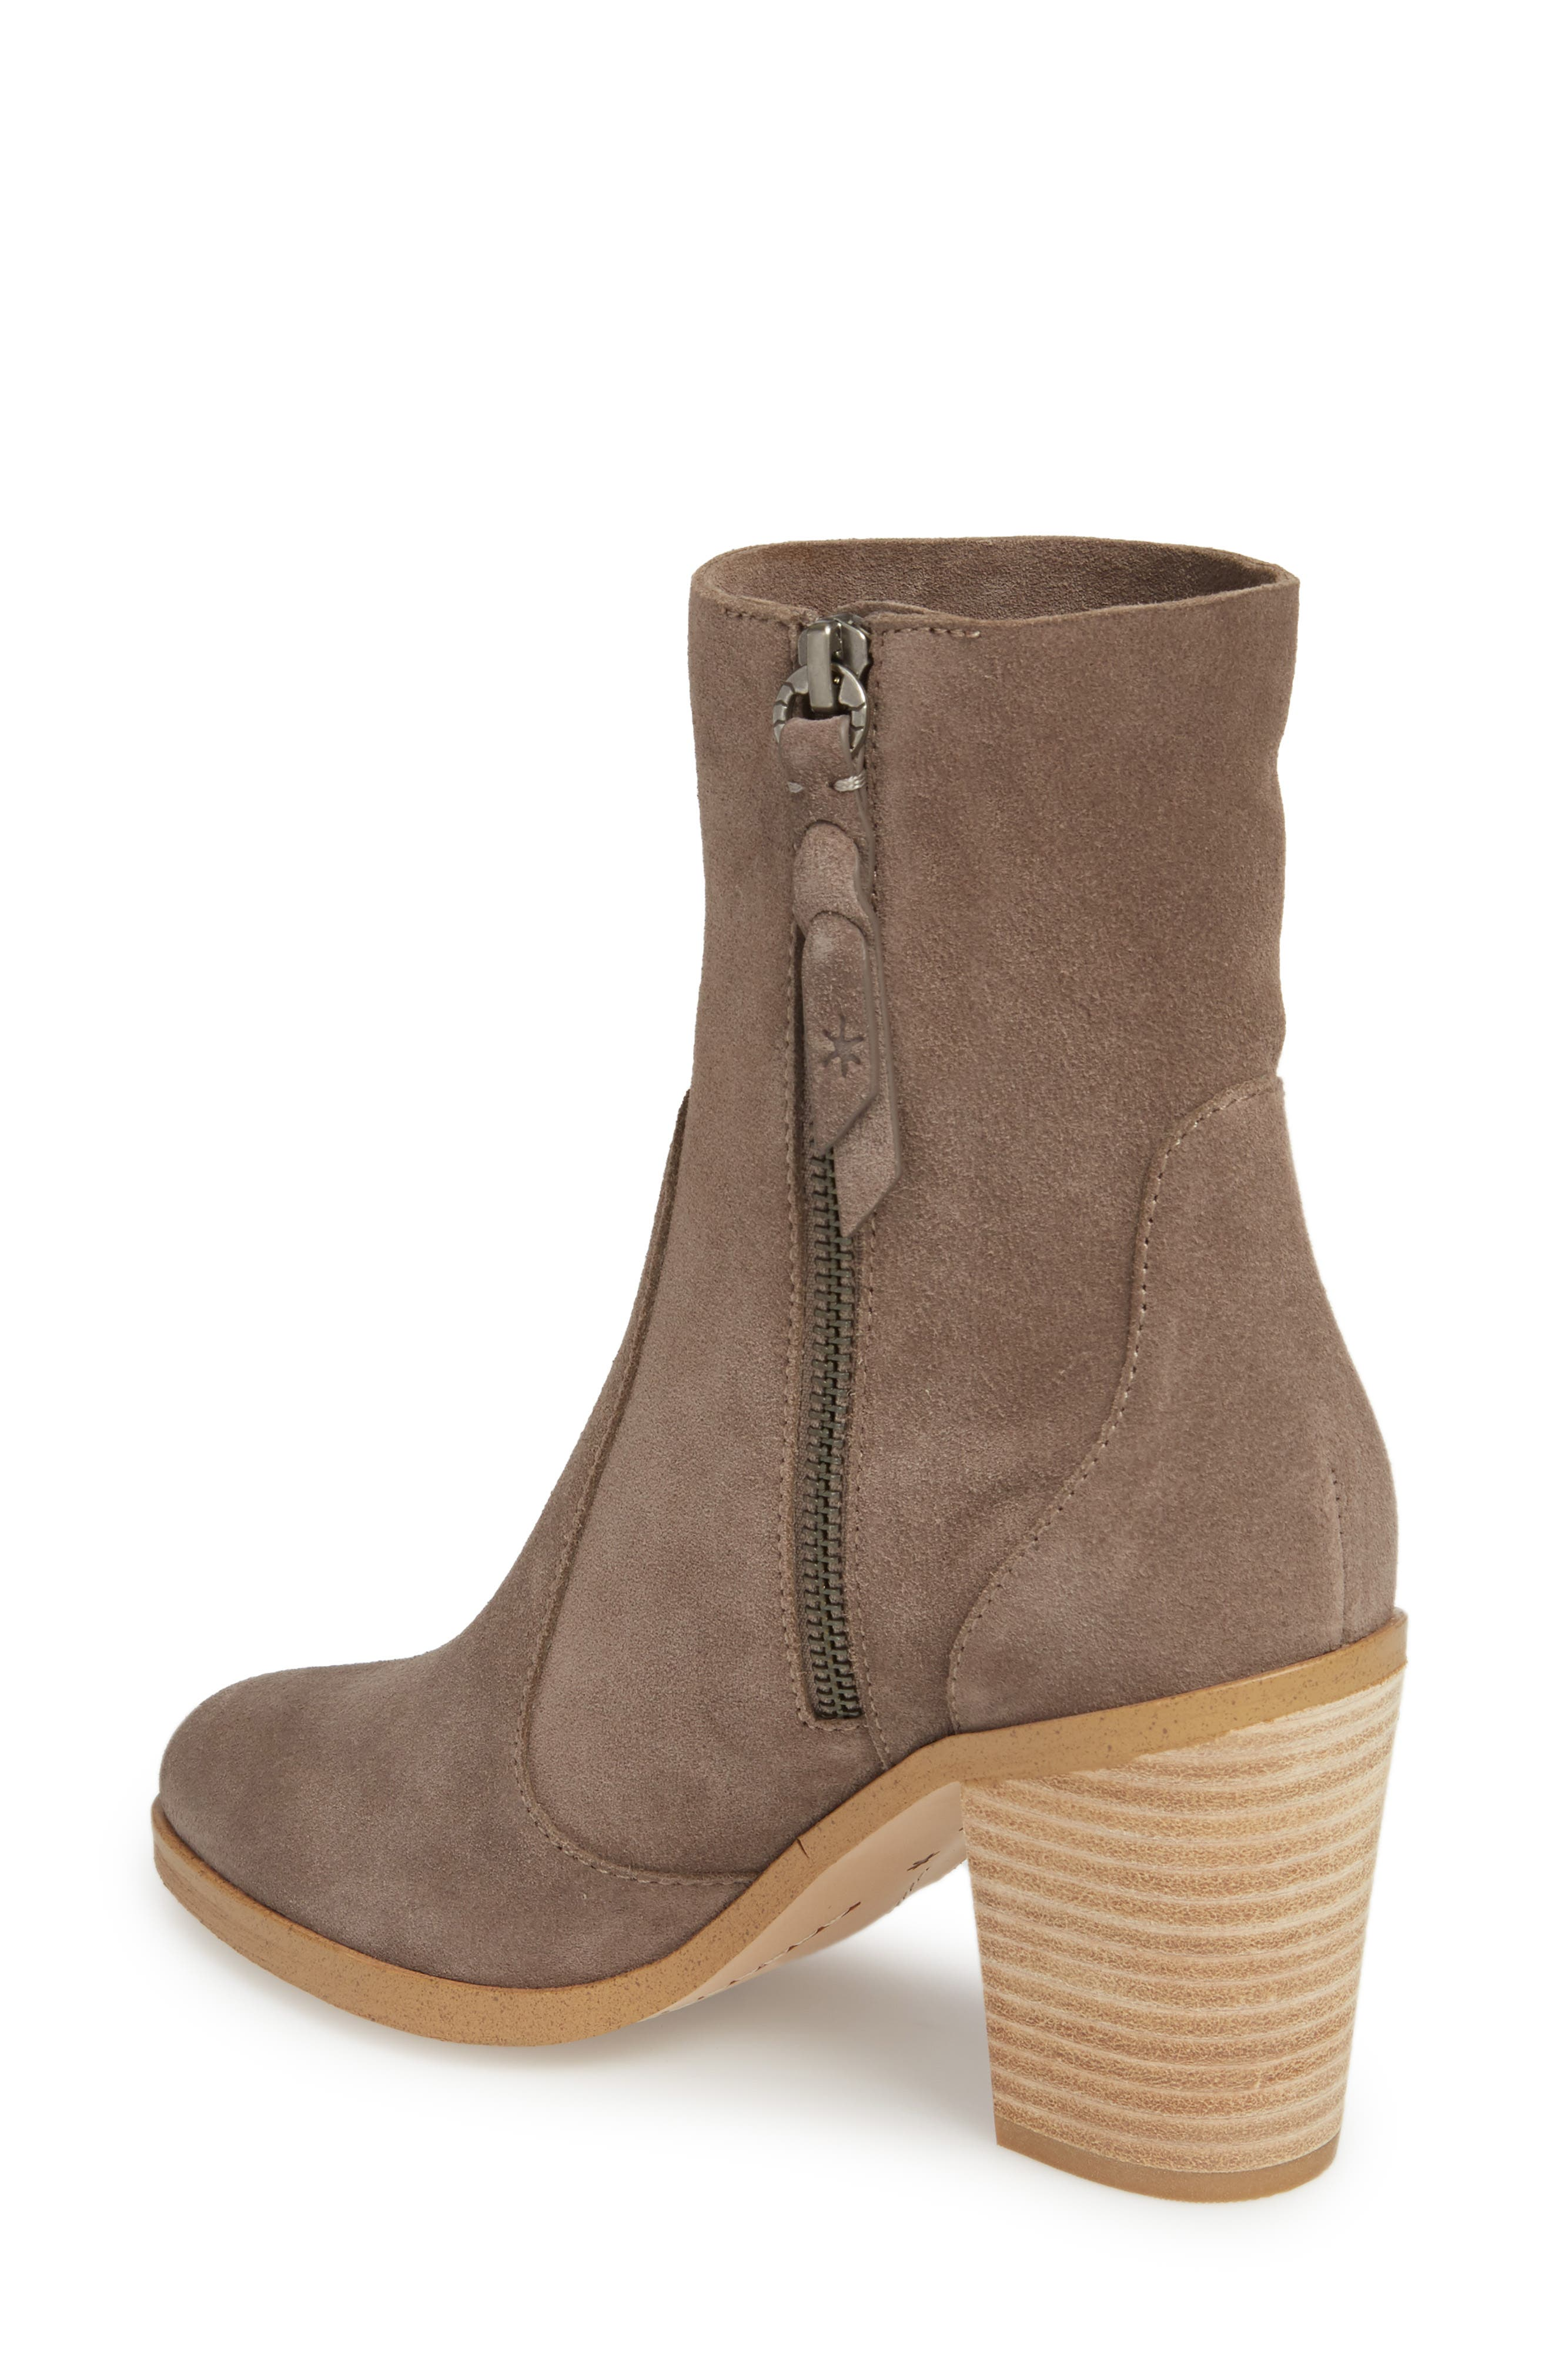 Roselyn II Almond Toe Bootie,                             Alternate thumbnail 2, color,                             LIGHT CHARCOAL SUEDE